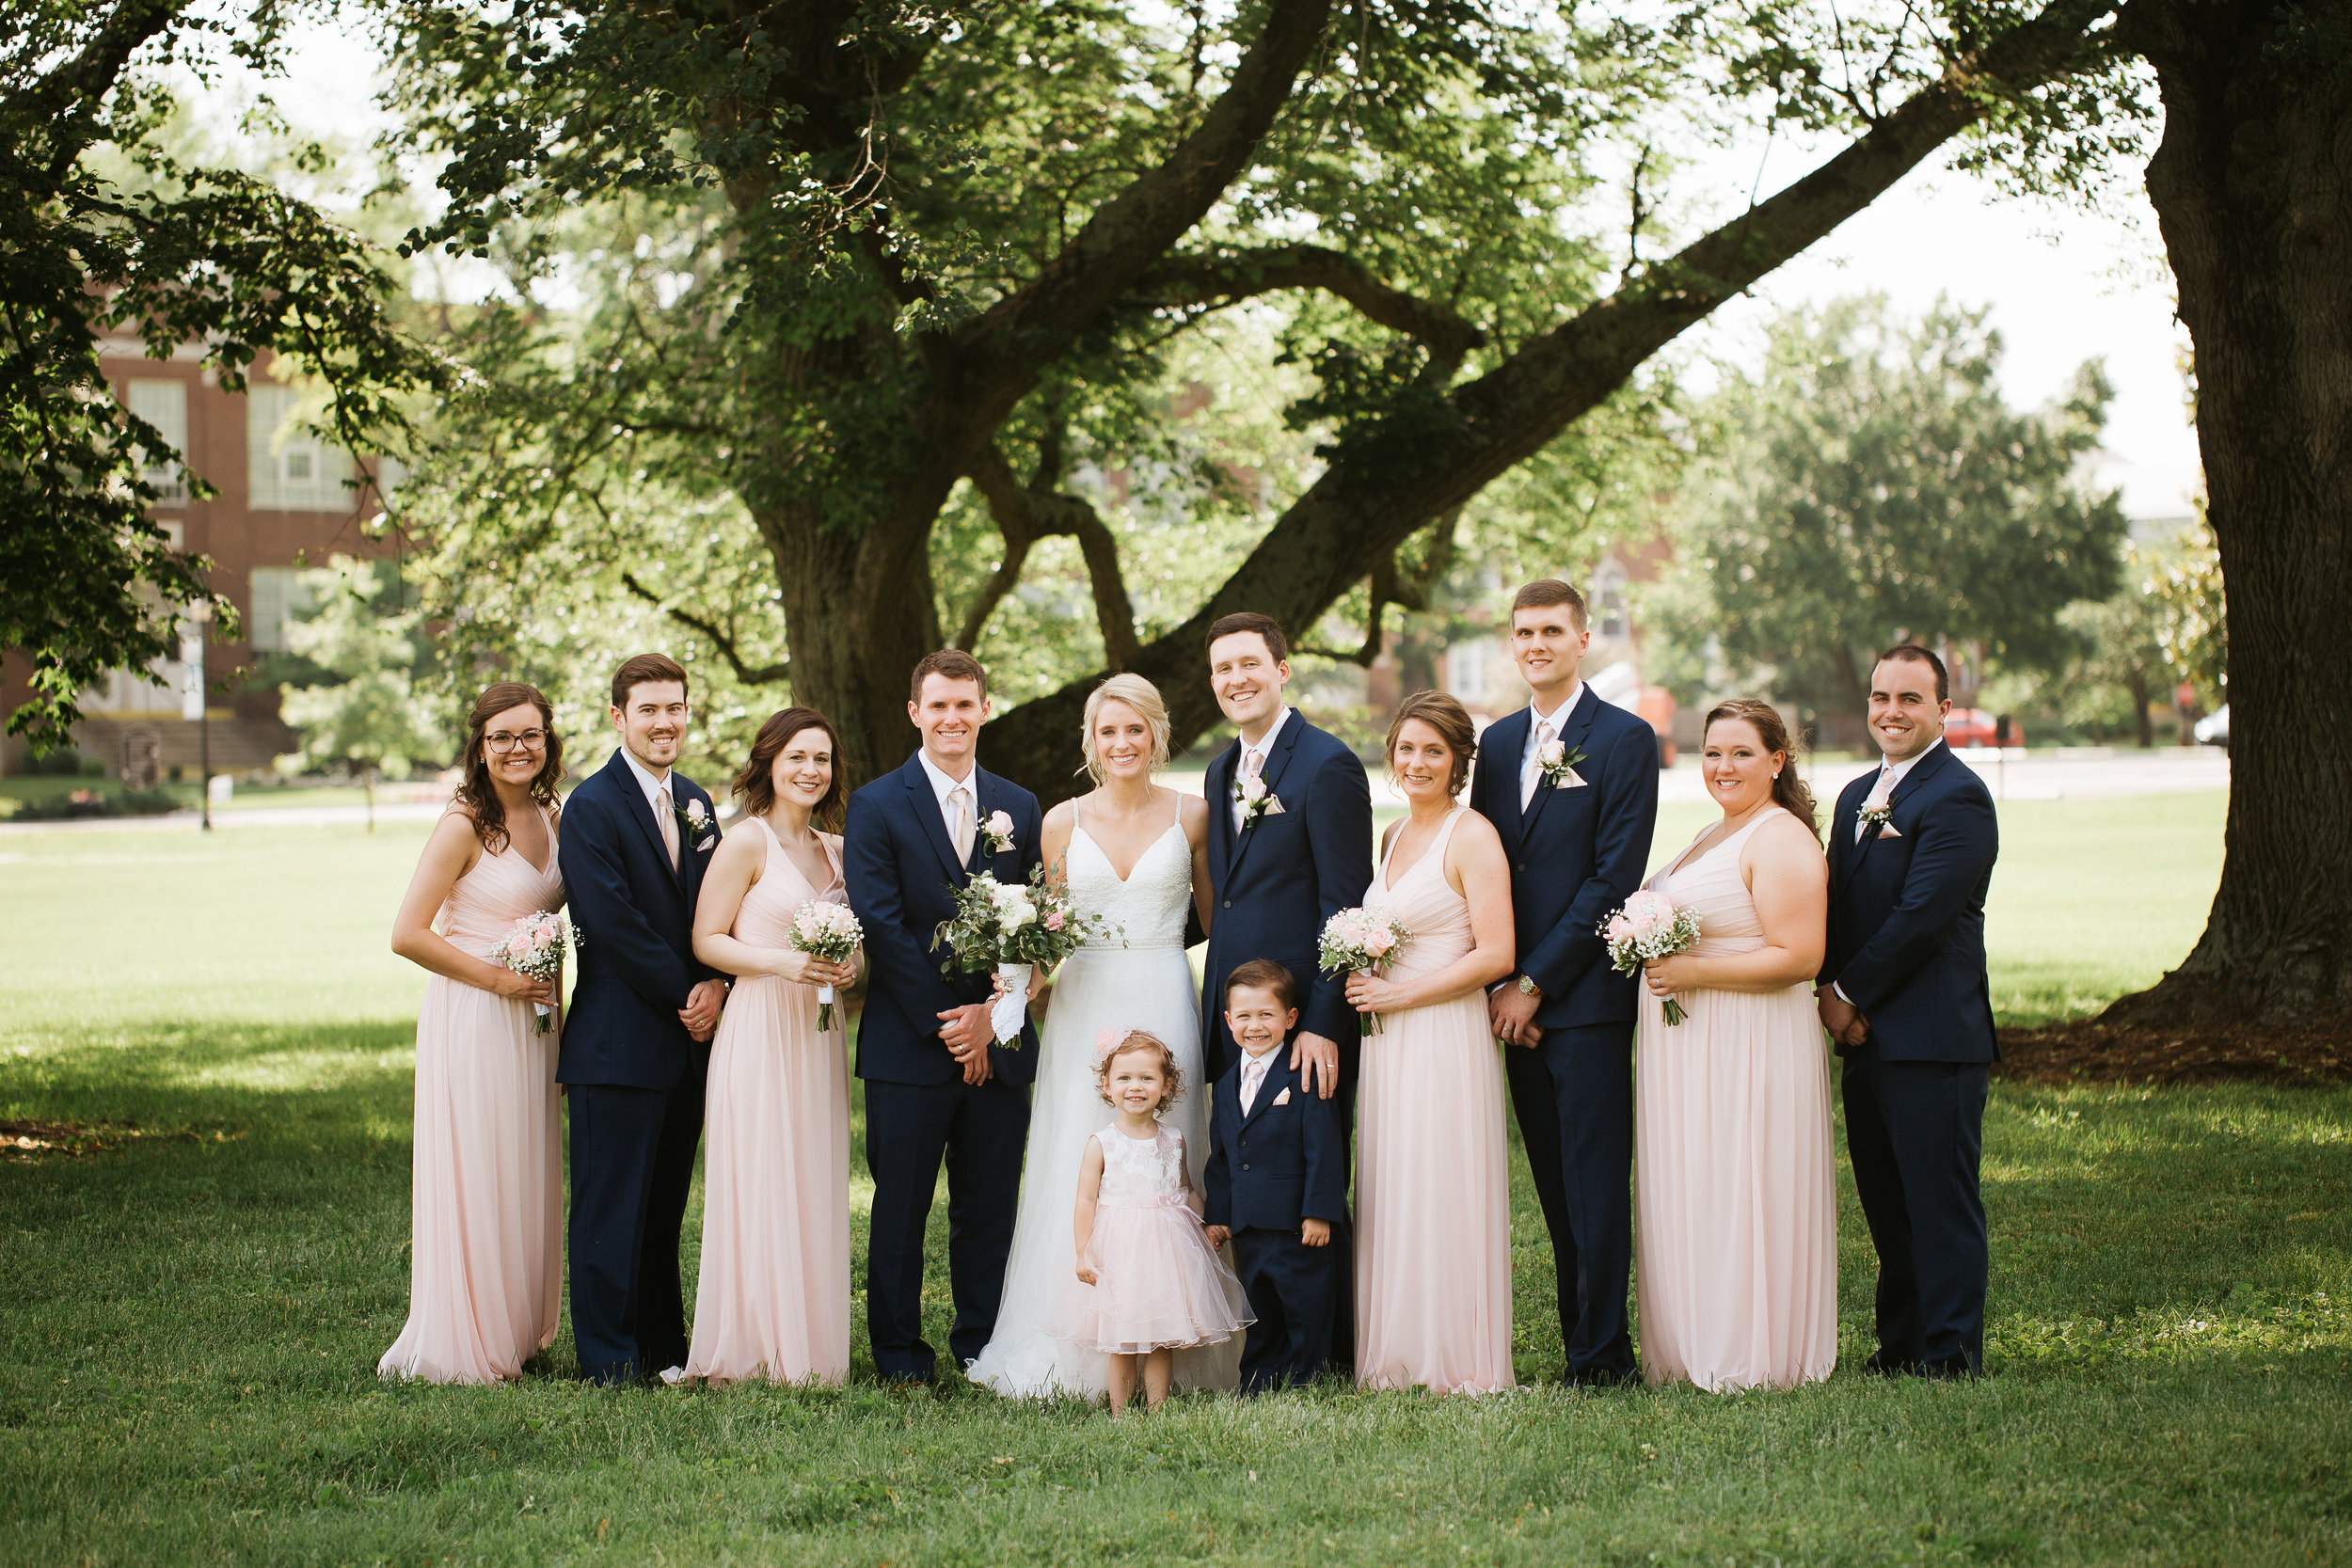 Sydney + Hunter - Bridal Party-53.jpg